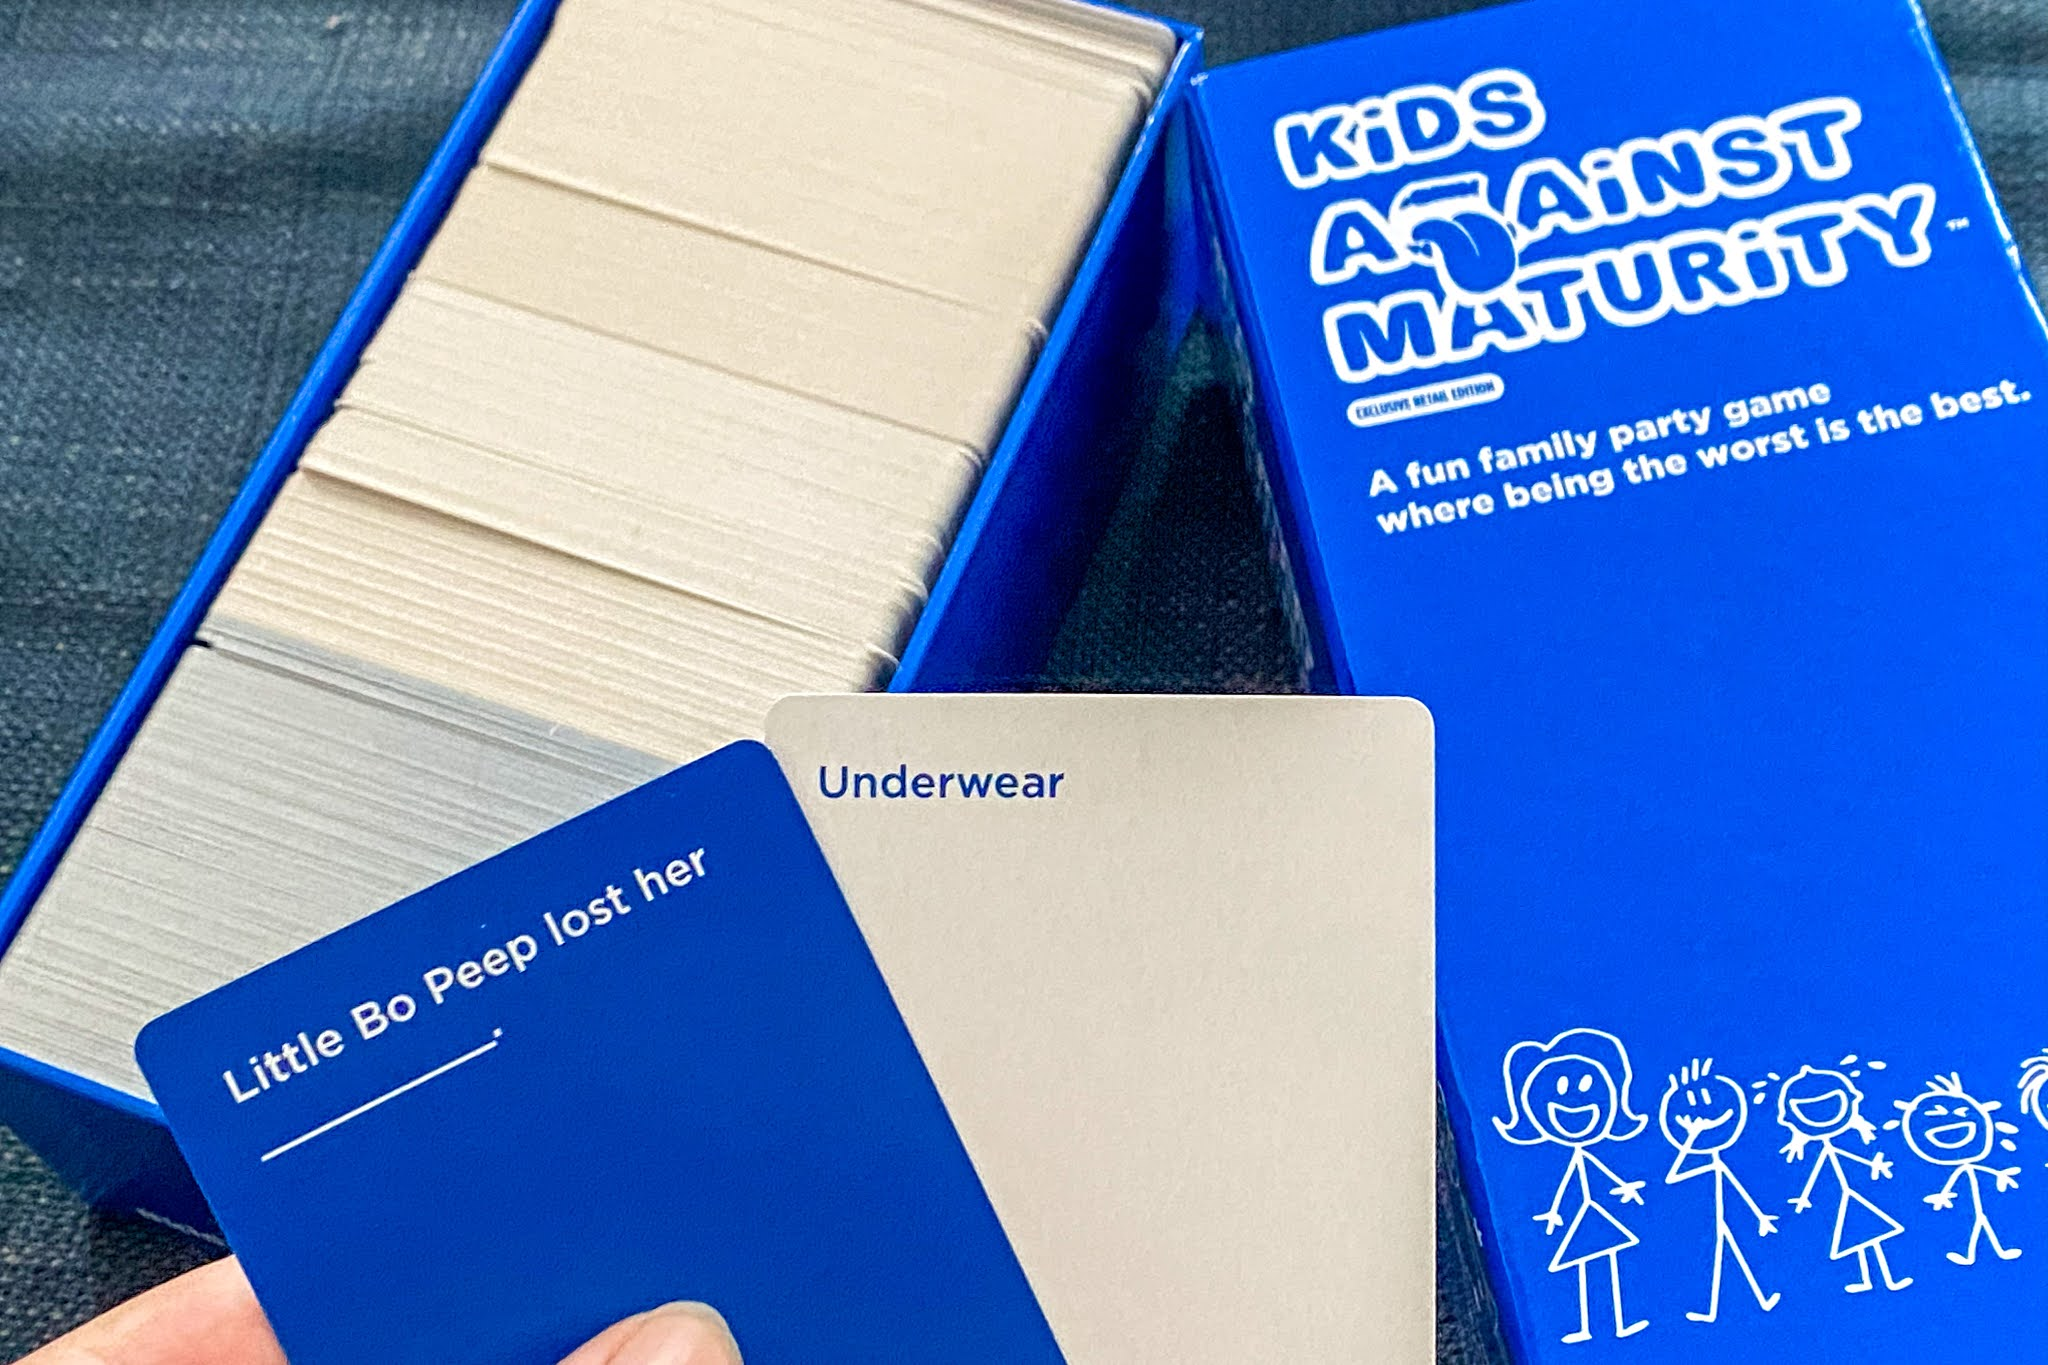 The Kids Against Maturity Card game box with a sample question and answer saying: Little Bo Peep lost her ... underwear